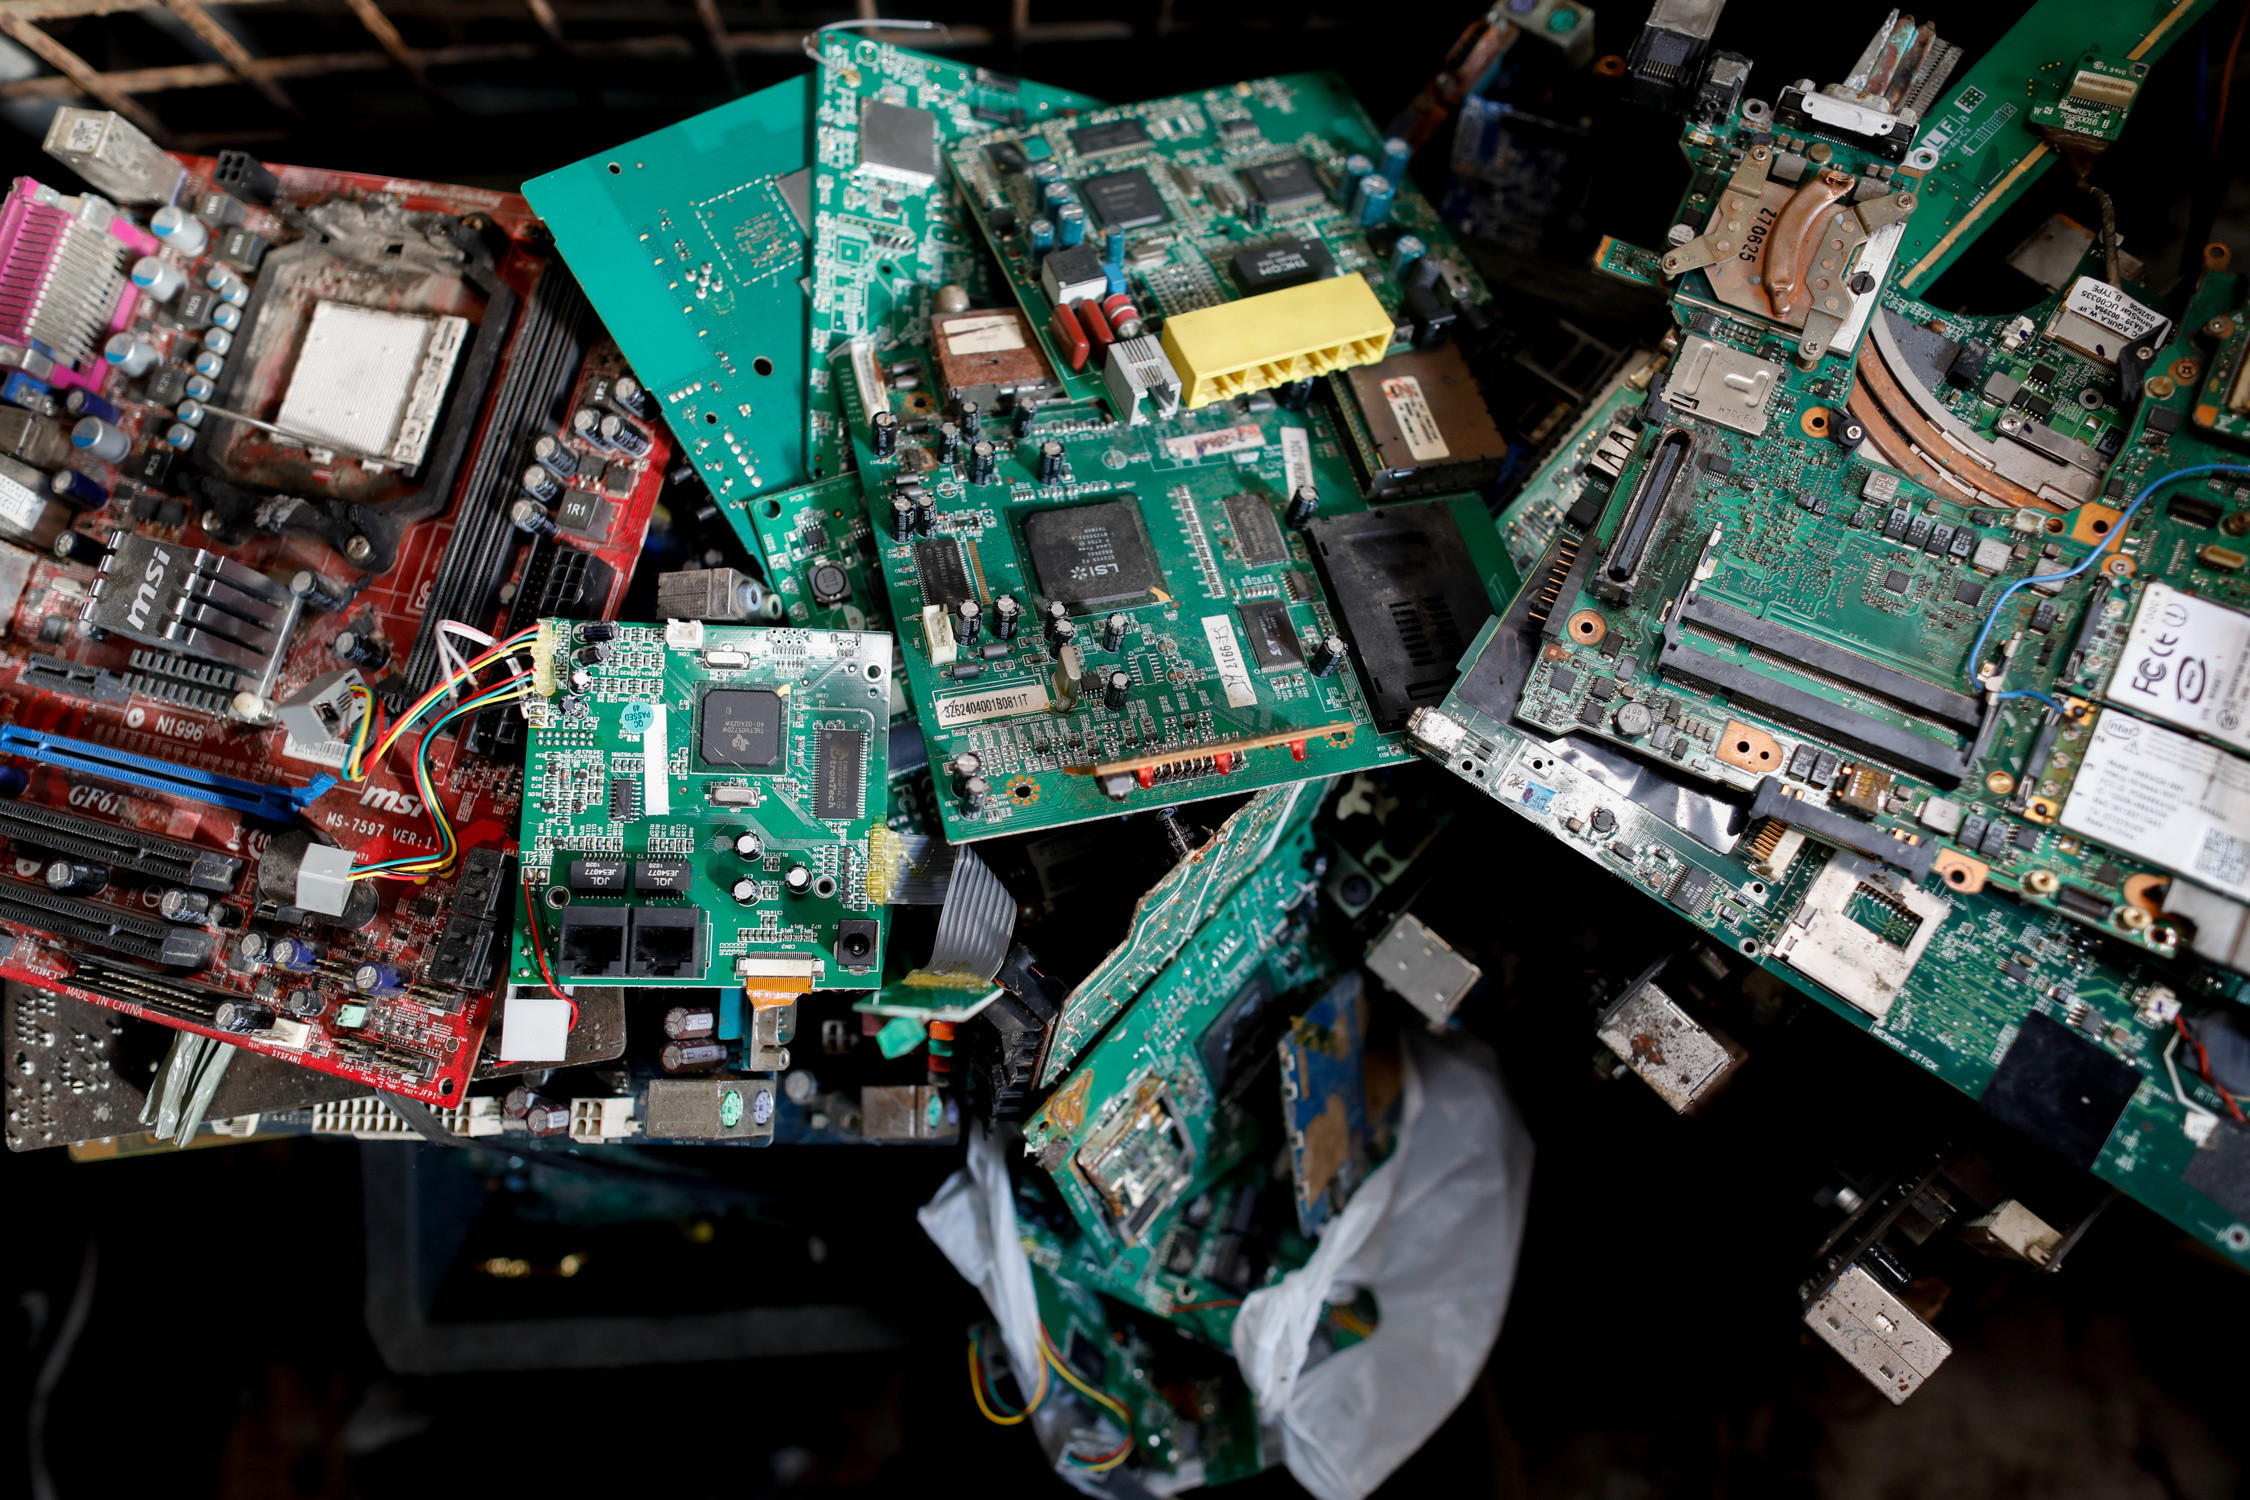 Electronic waste or e-waste from computers is pictured in a junk shop in Makati City, Metro Manila, Philippines, July 2, 2020. REUTERS/Eloisa Lopez - RC2QKH9SLRP2